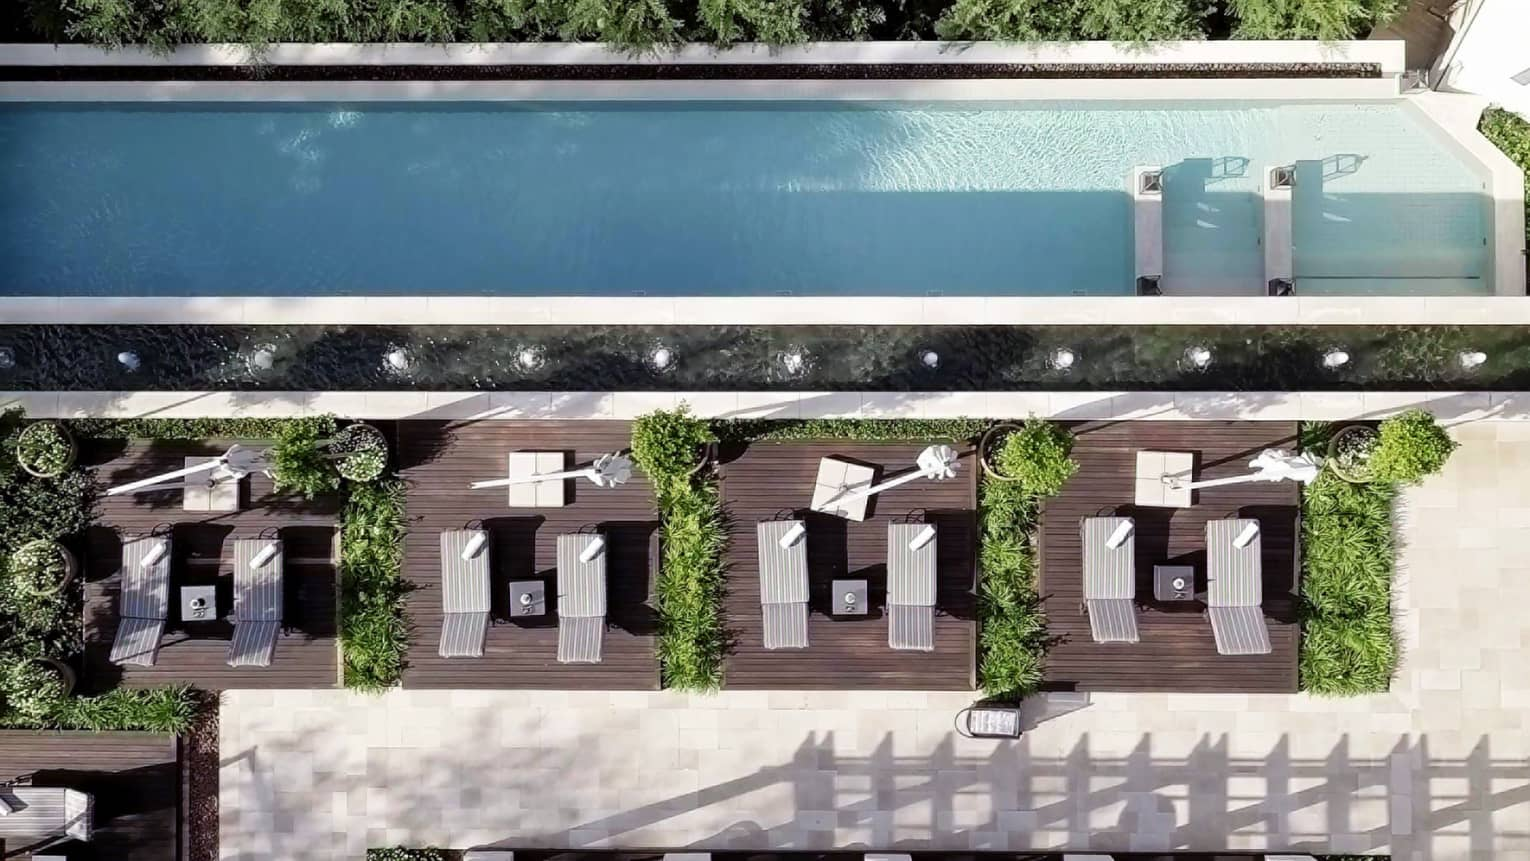 Aerial view of long rectangular outdoor swimming pool, lounge chairs on wood deck